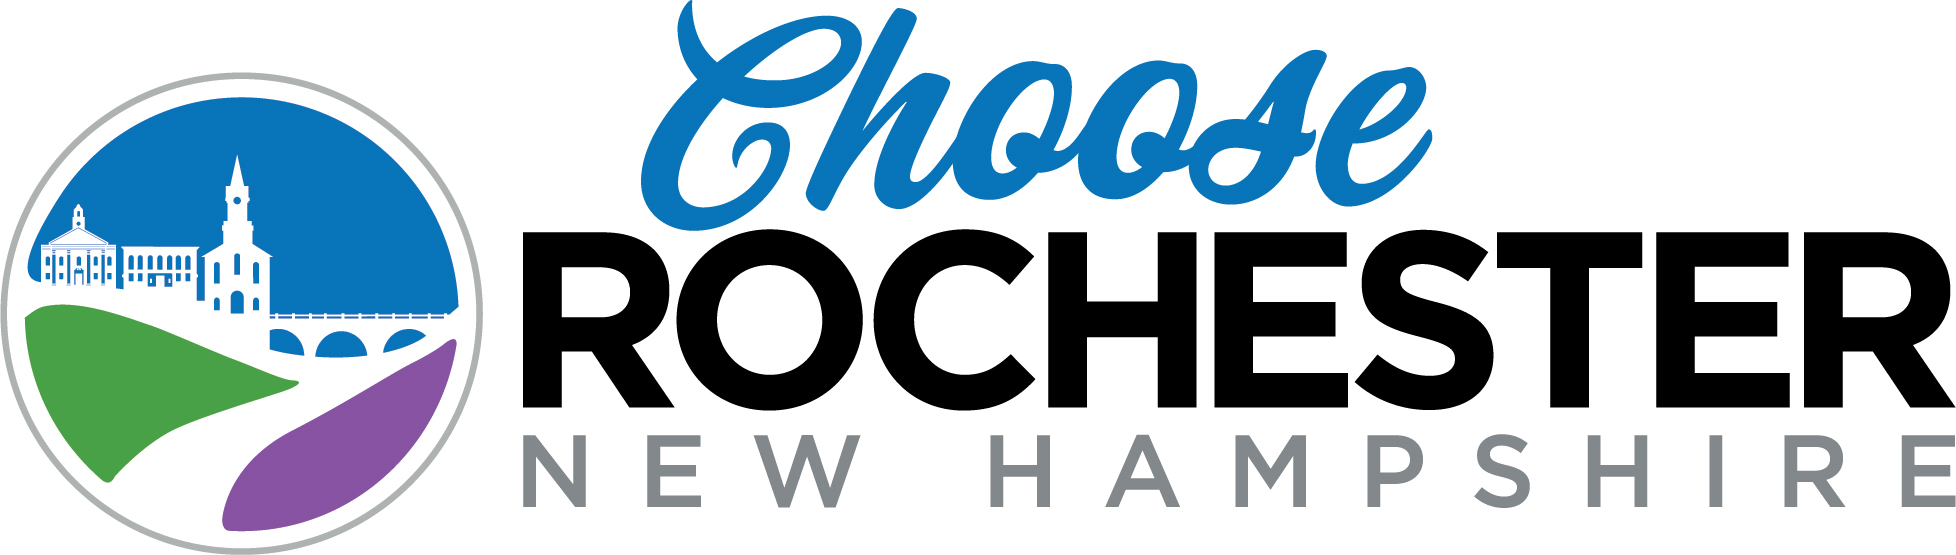 Choose Rochester, New Hampshire